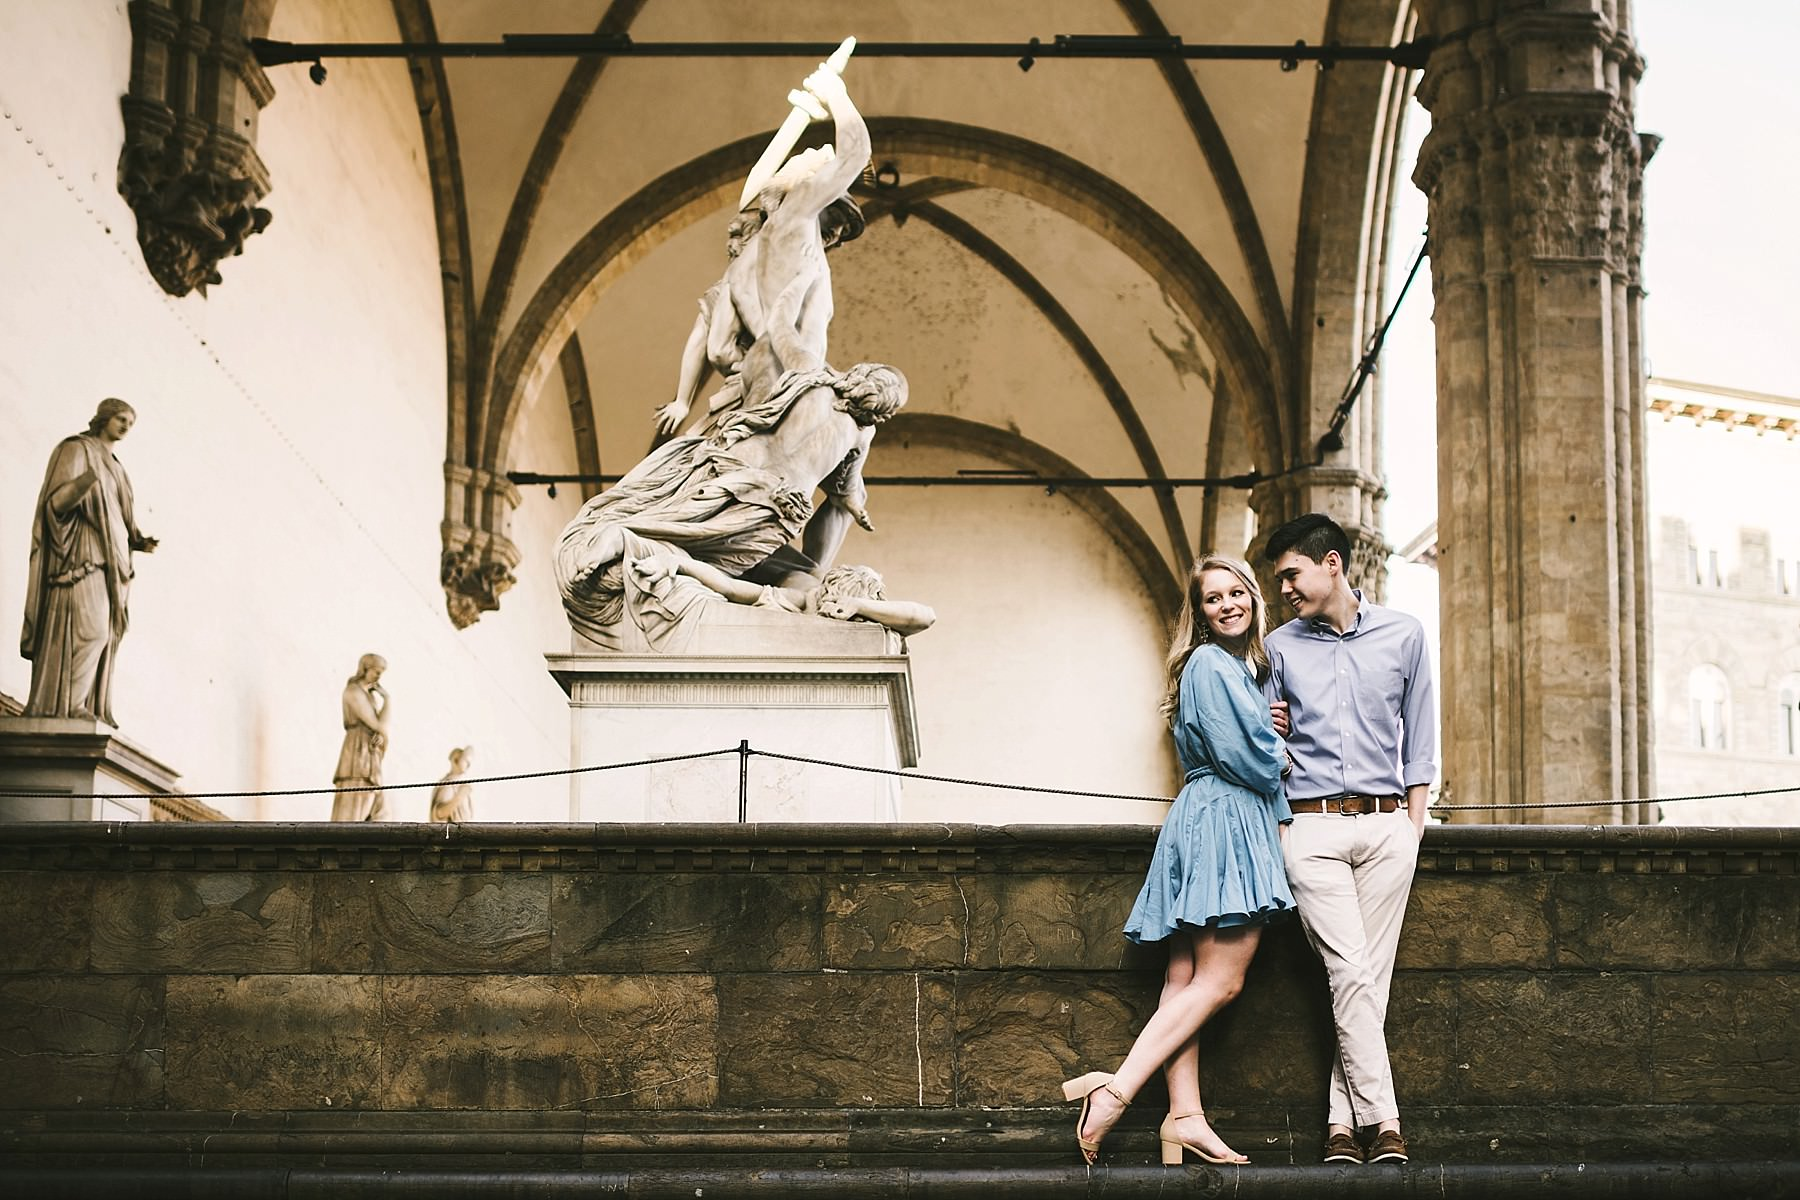 Never too young for romantic vacation photos in Florence. Early morning sunrise engagement photo shoot Piazza della Signoria